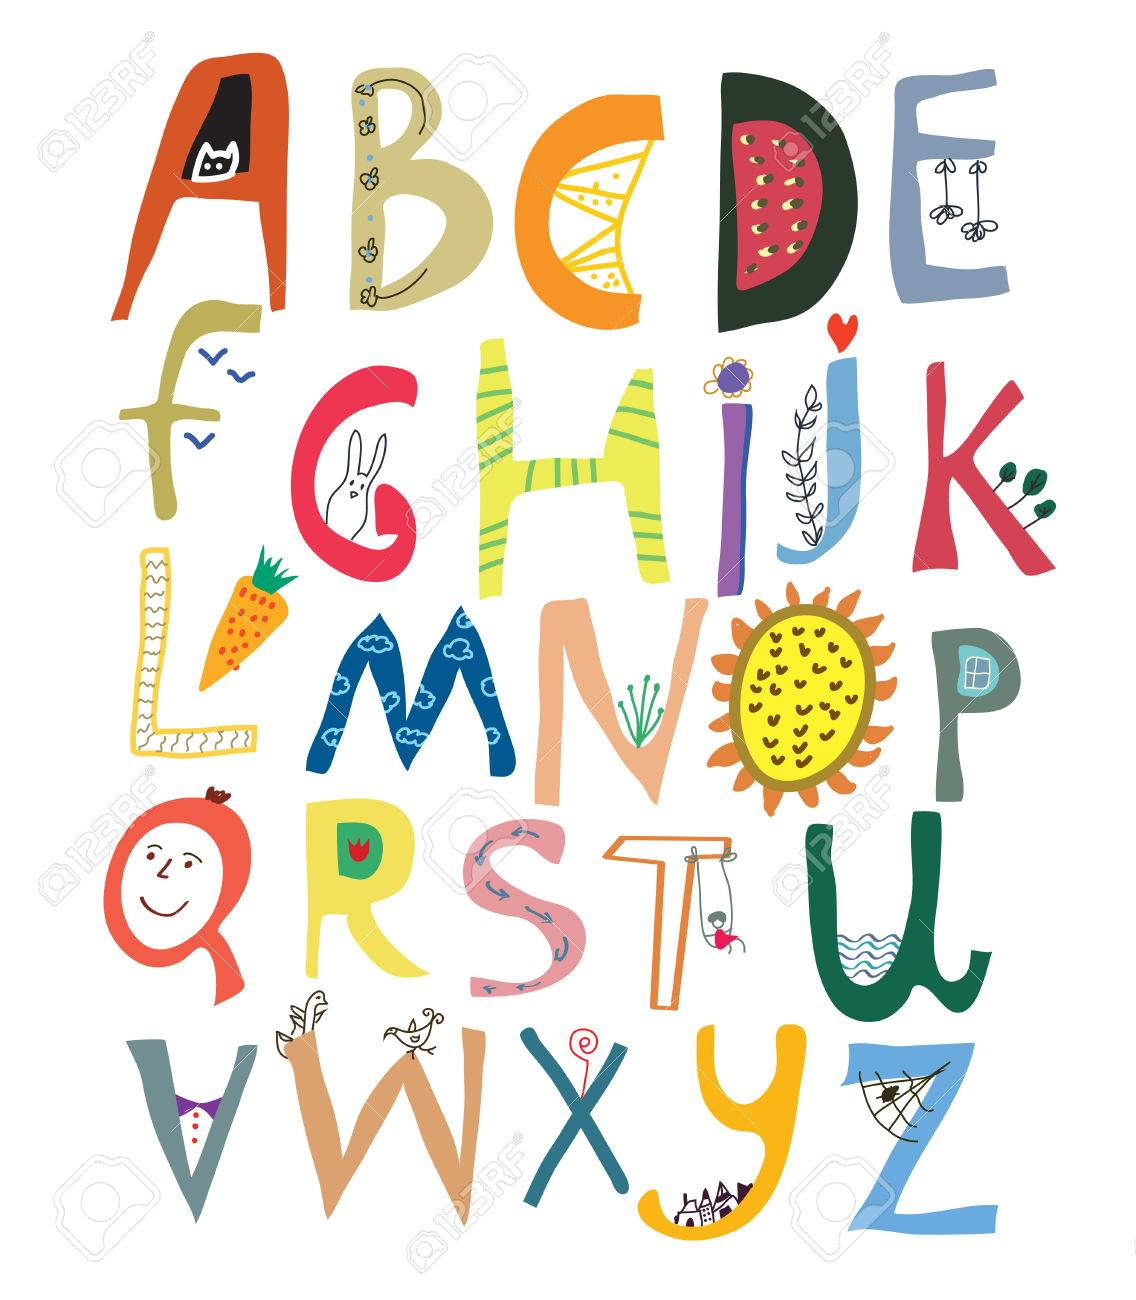 Funny alphabet for kids with faces, vegetables, flowers and animals - vector illustration - 47417202